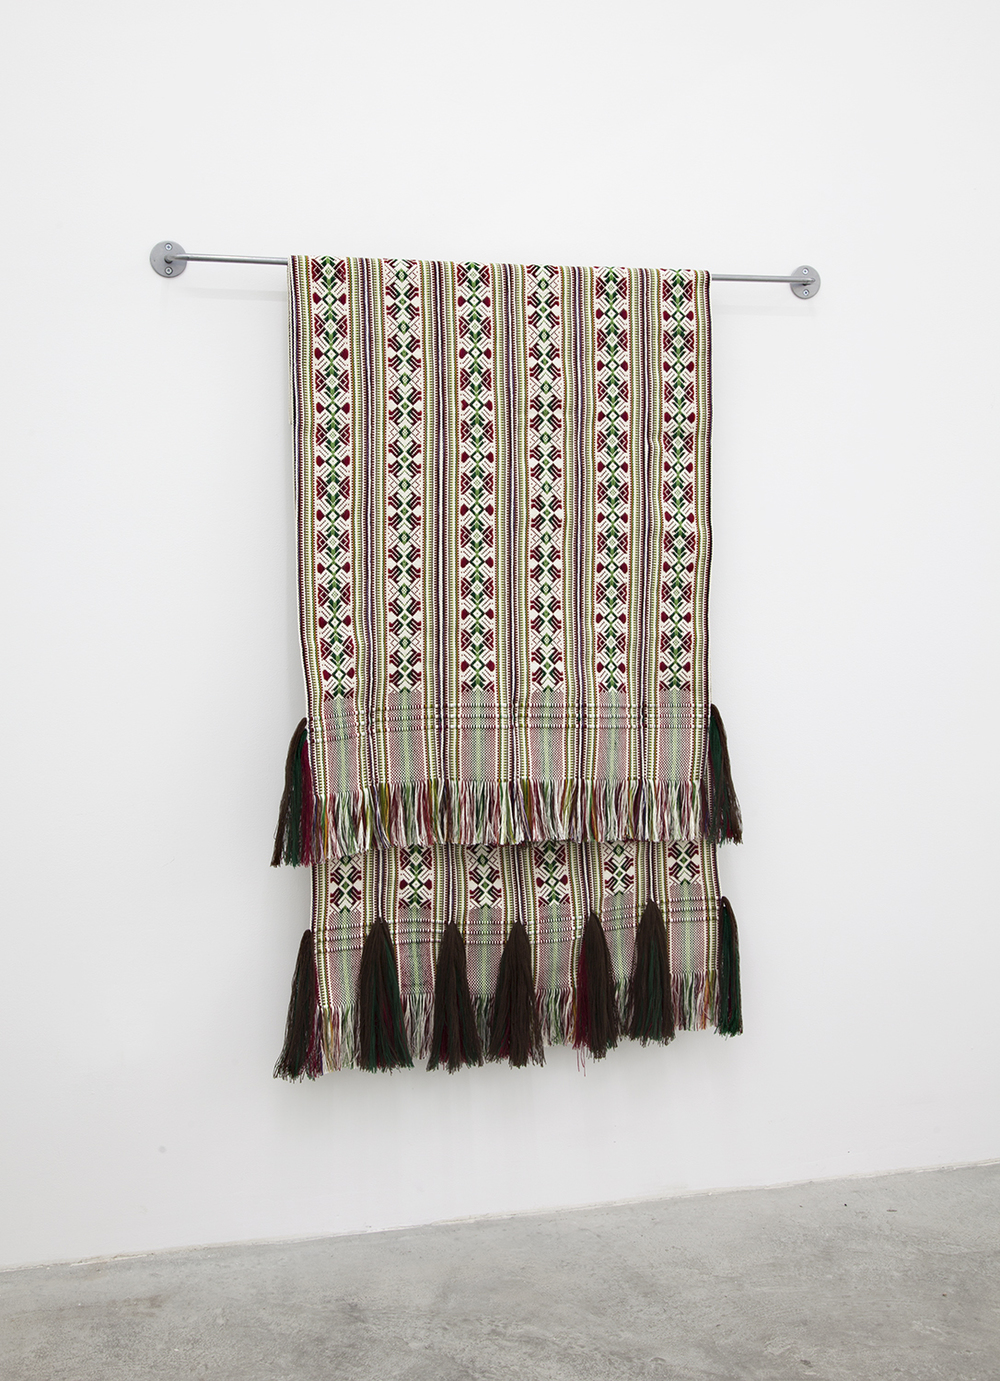 Indrė Šerpytytė from. between. to. , 2016 Cotton and steel 45 x 39.25 x 4 inches